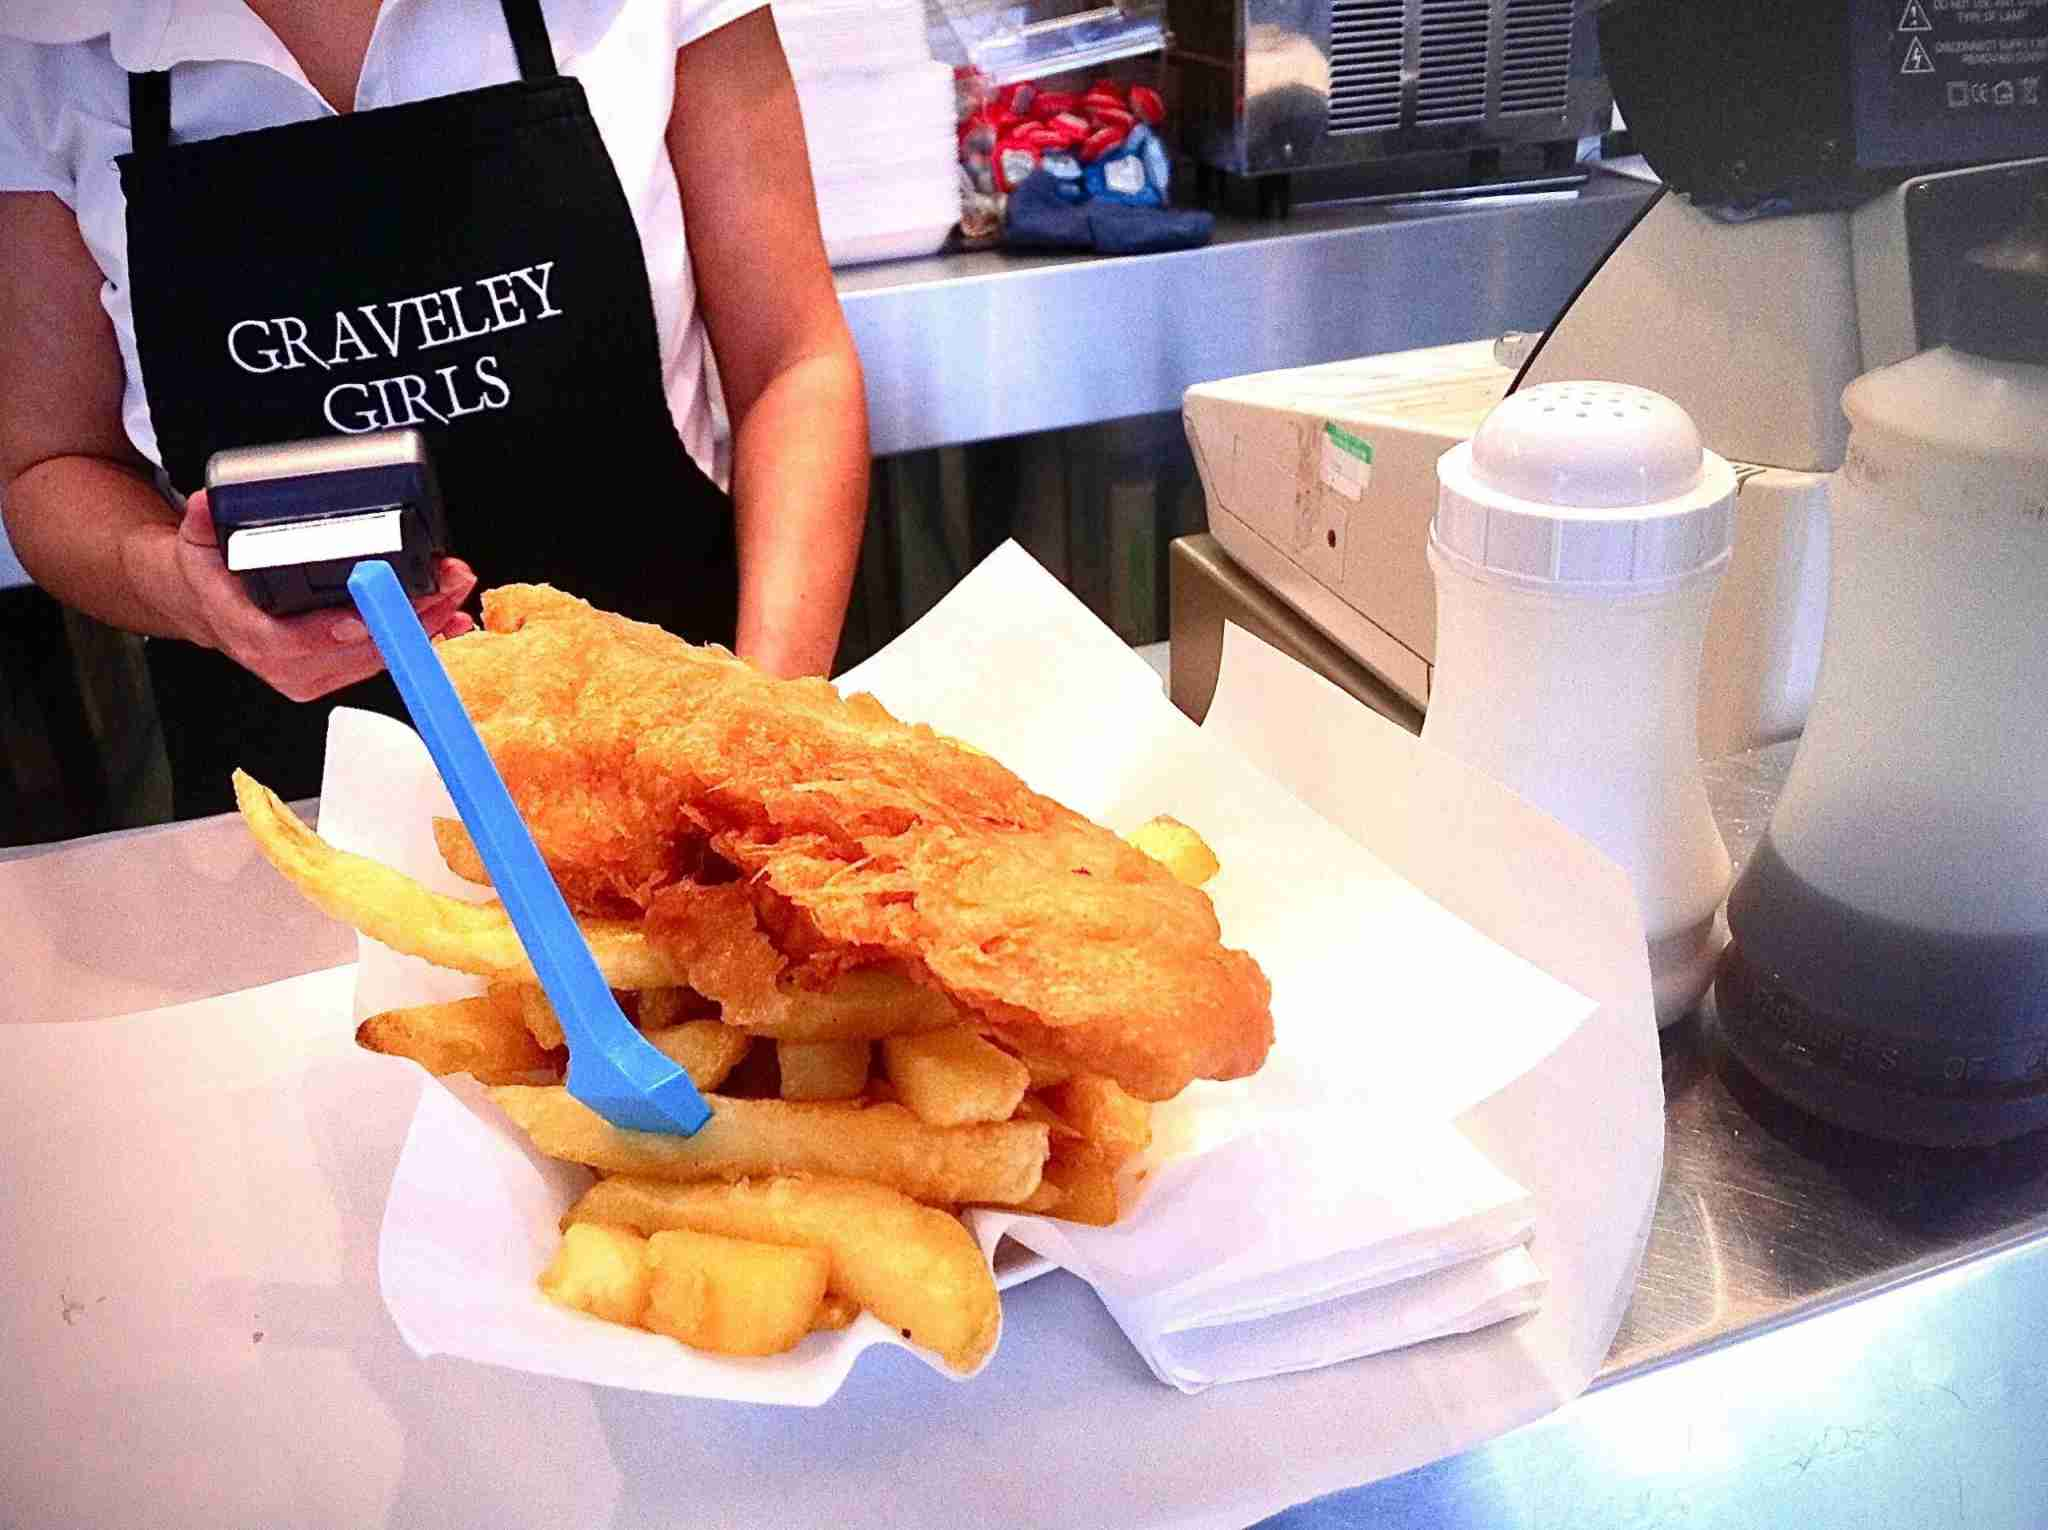 Fish and chips from Graveley